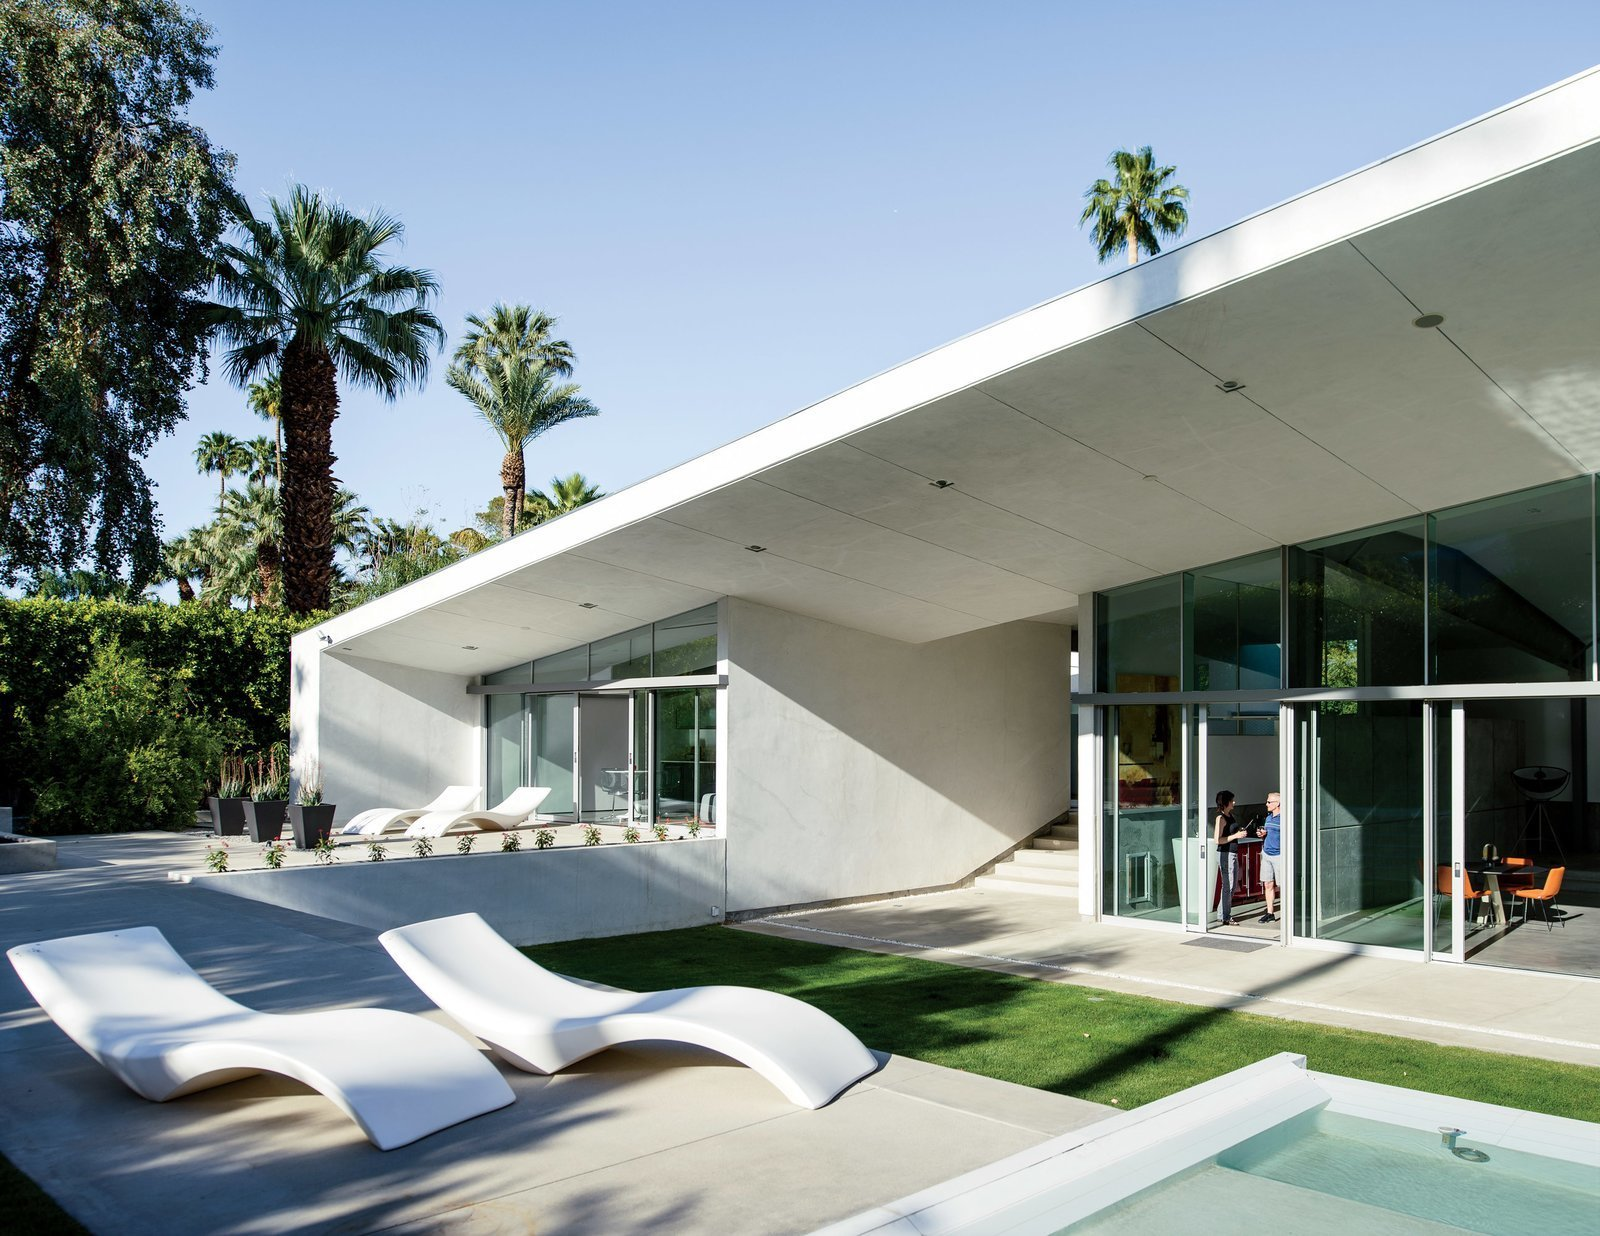 Outdoor, Swimming Pools, Tubs, Shower, Grass, Concrete Patio, Porch, Deck, Walkways, and Raised Planters This modernist Palm Springs home was completed in just two months using a hybrid building system. The core of the dwelling features concrete walls and floors and prefabricated lightweight steel beams. The exterior walls were trucked to the site after.  Photo 2 of 61 in The Definitive Guide to Prefab Home Companies in Your State from 7 Coolest California Prefabs